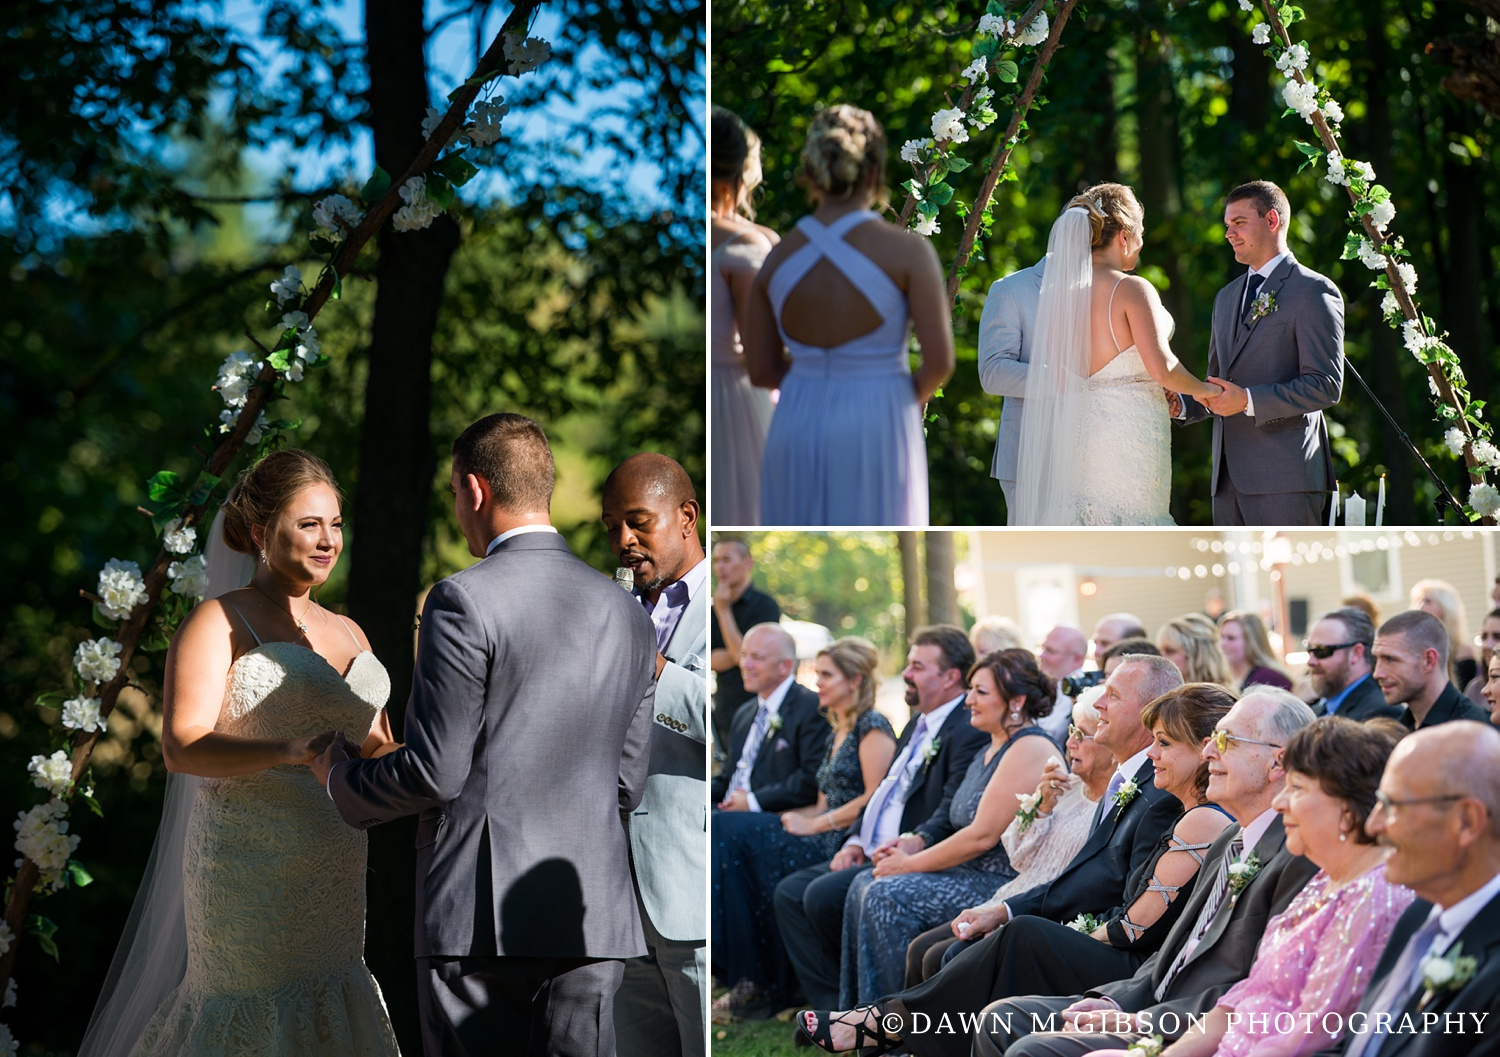 Photos by Dawn M Gibson Photography